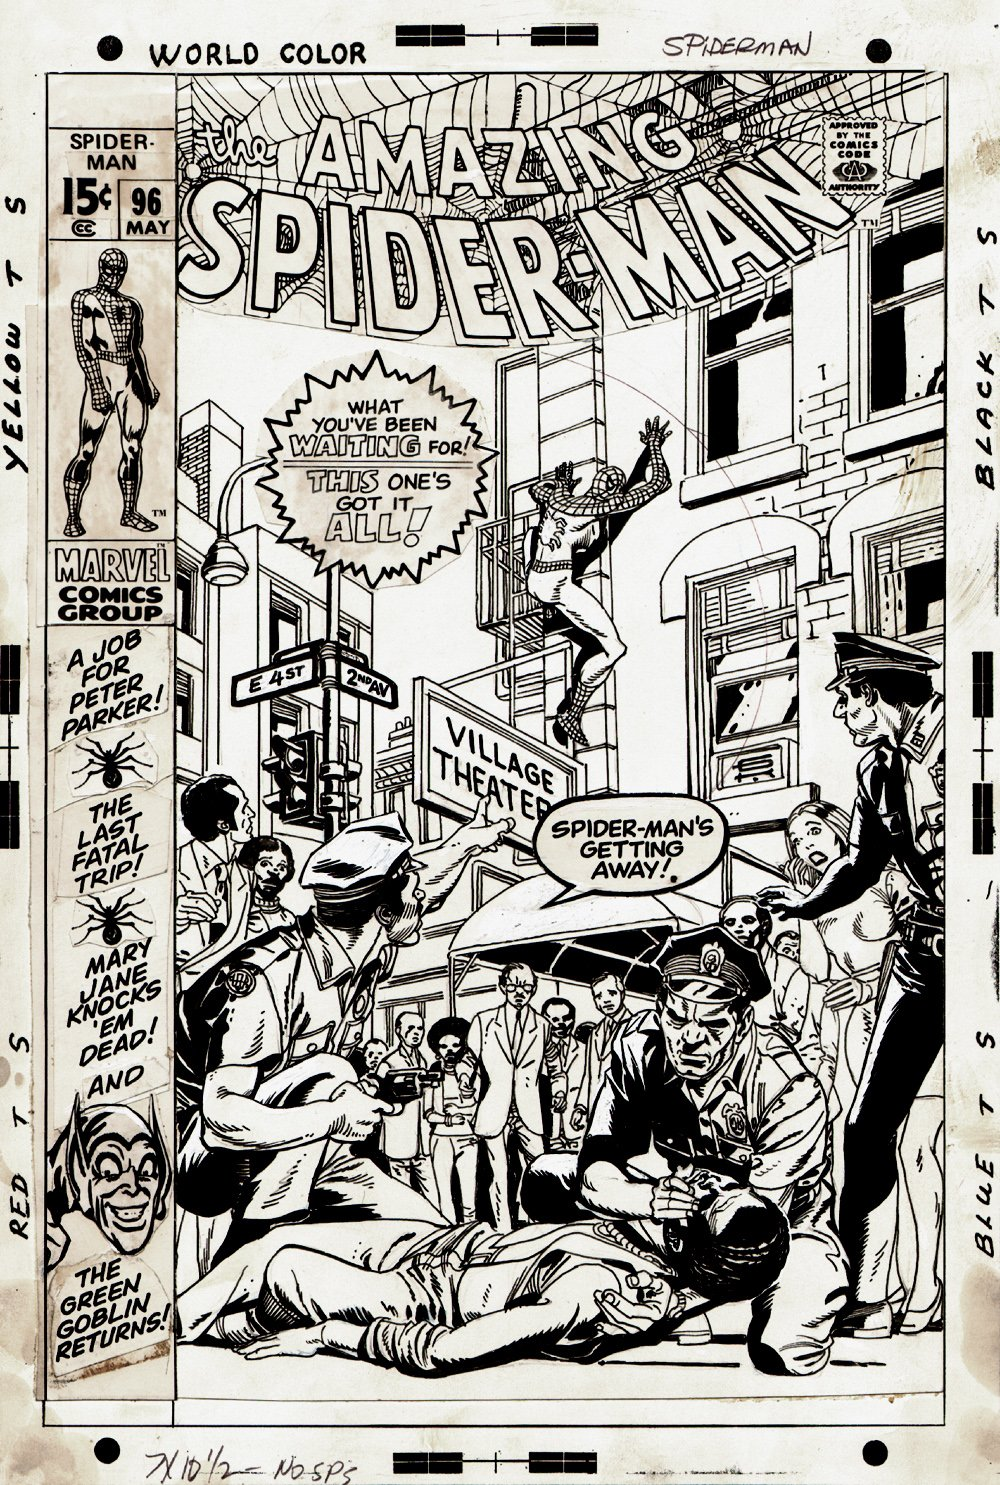 Amazing Spider-Man #96 Cover (1971) SOLD SOLD SOLD!